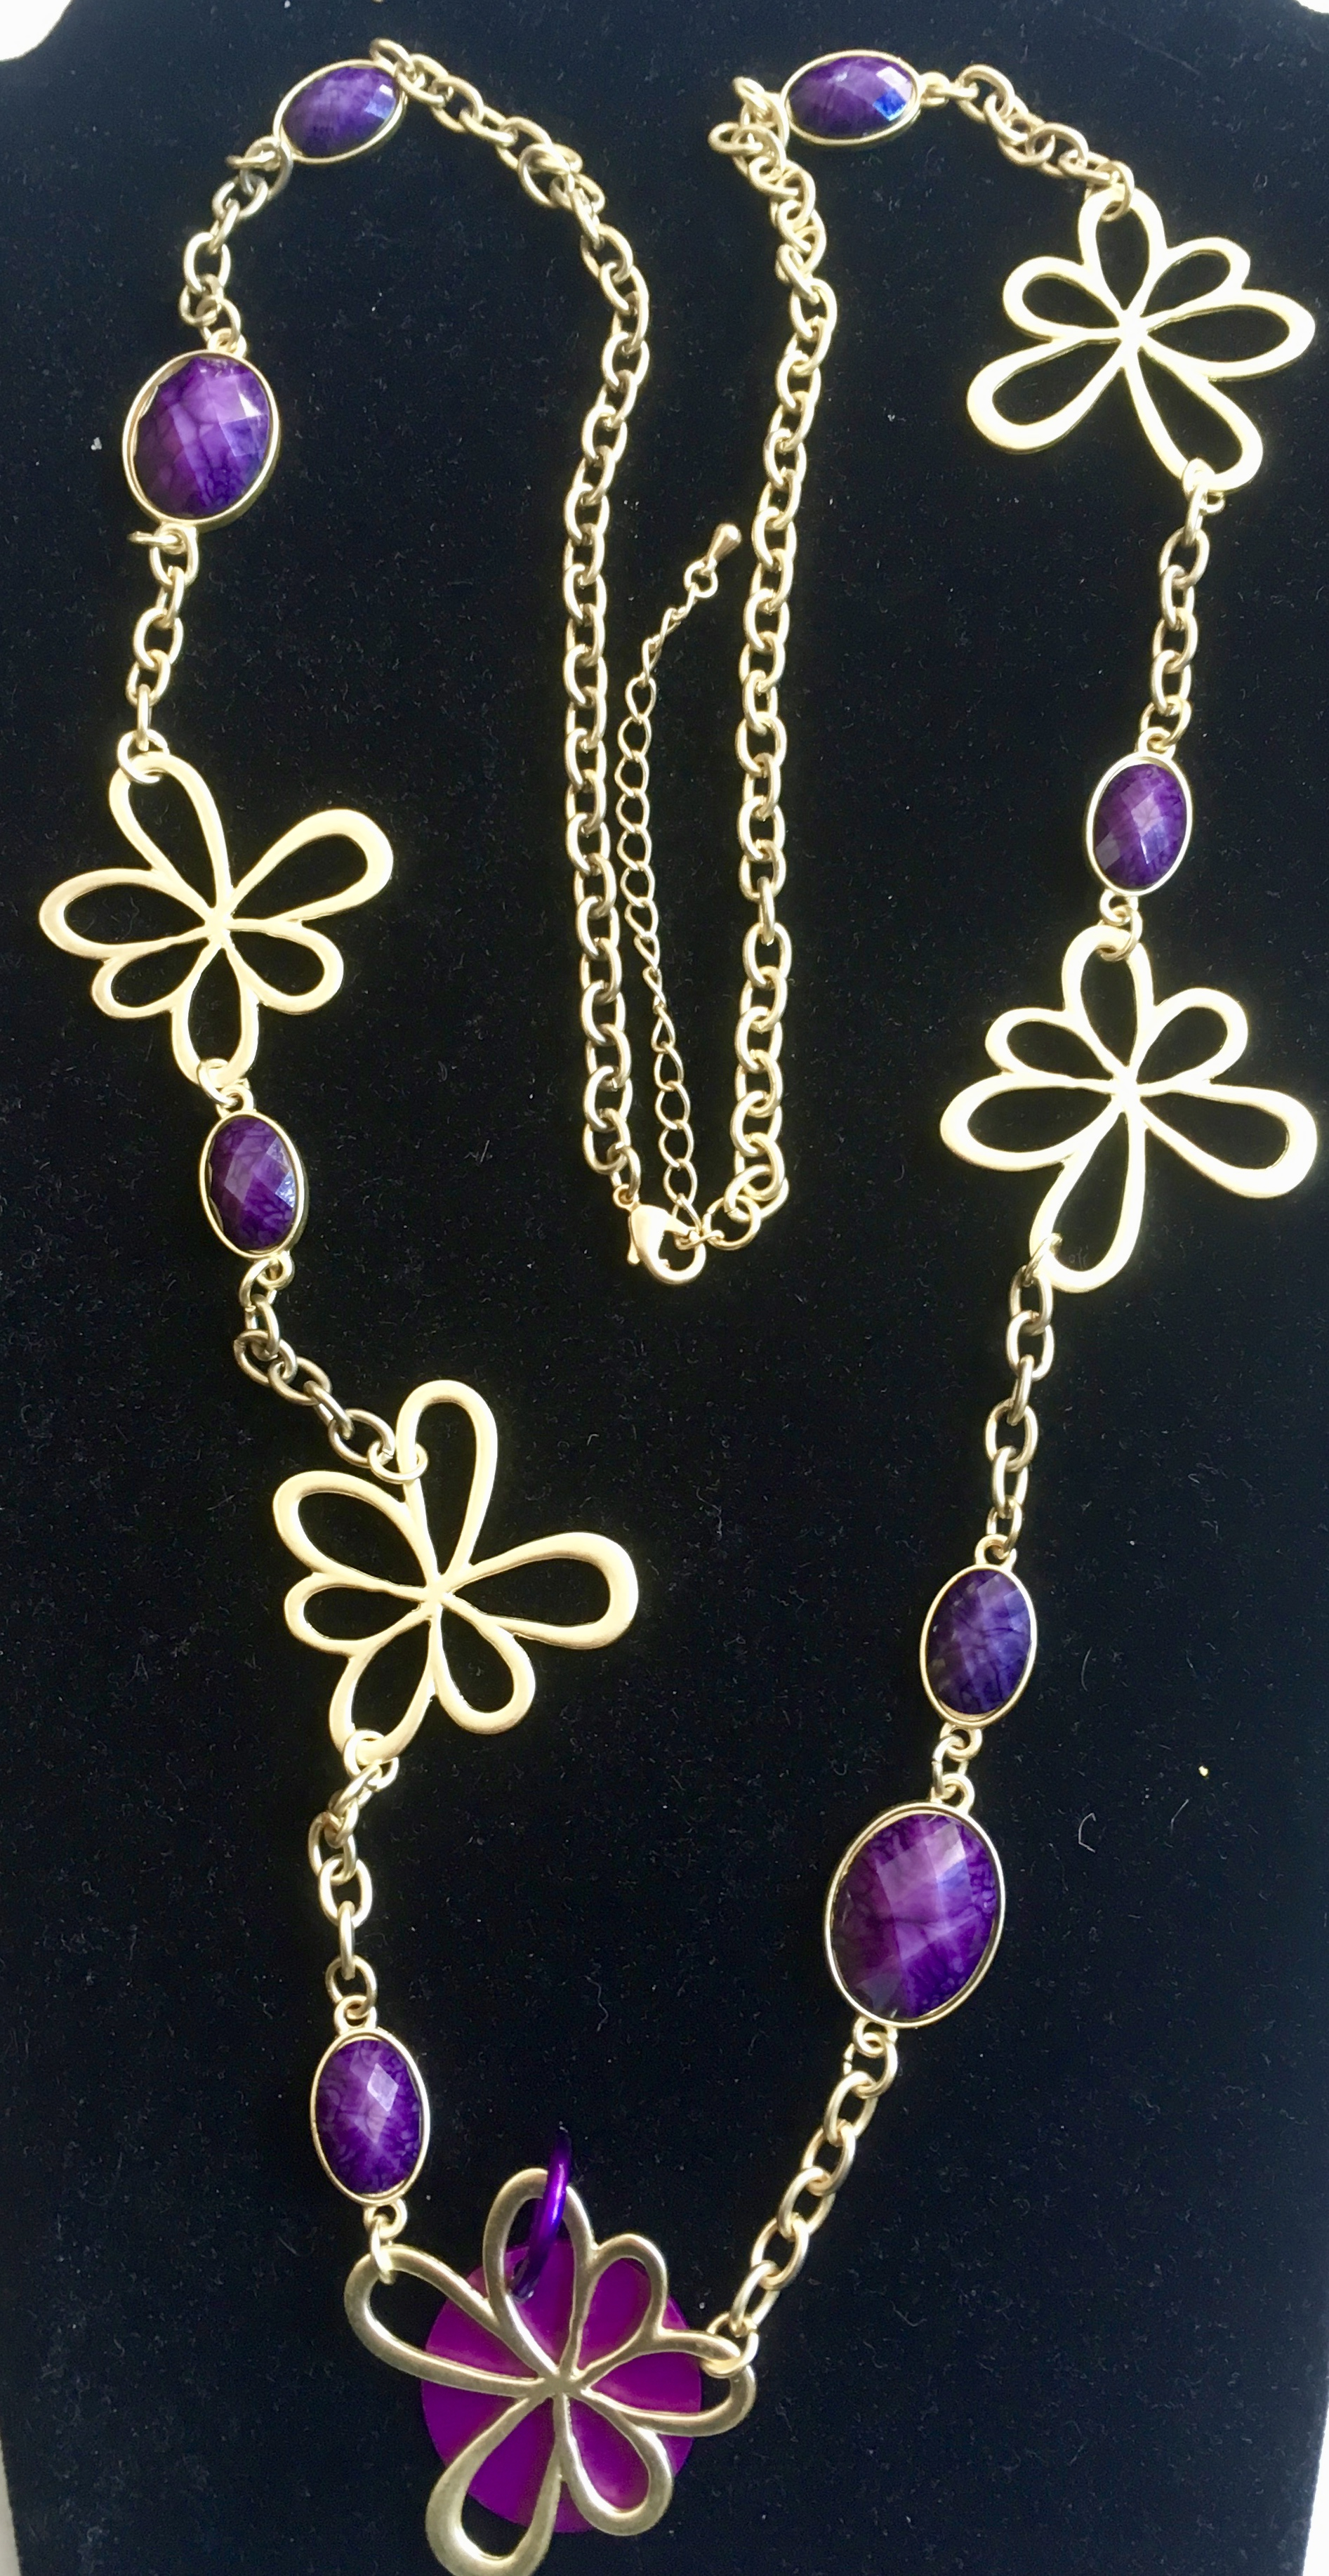 SALE: Golden Flowers Long Golden Necklace with Energy Disk